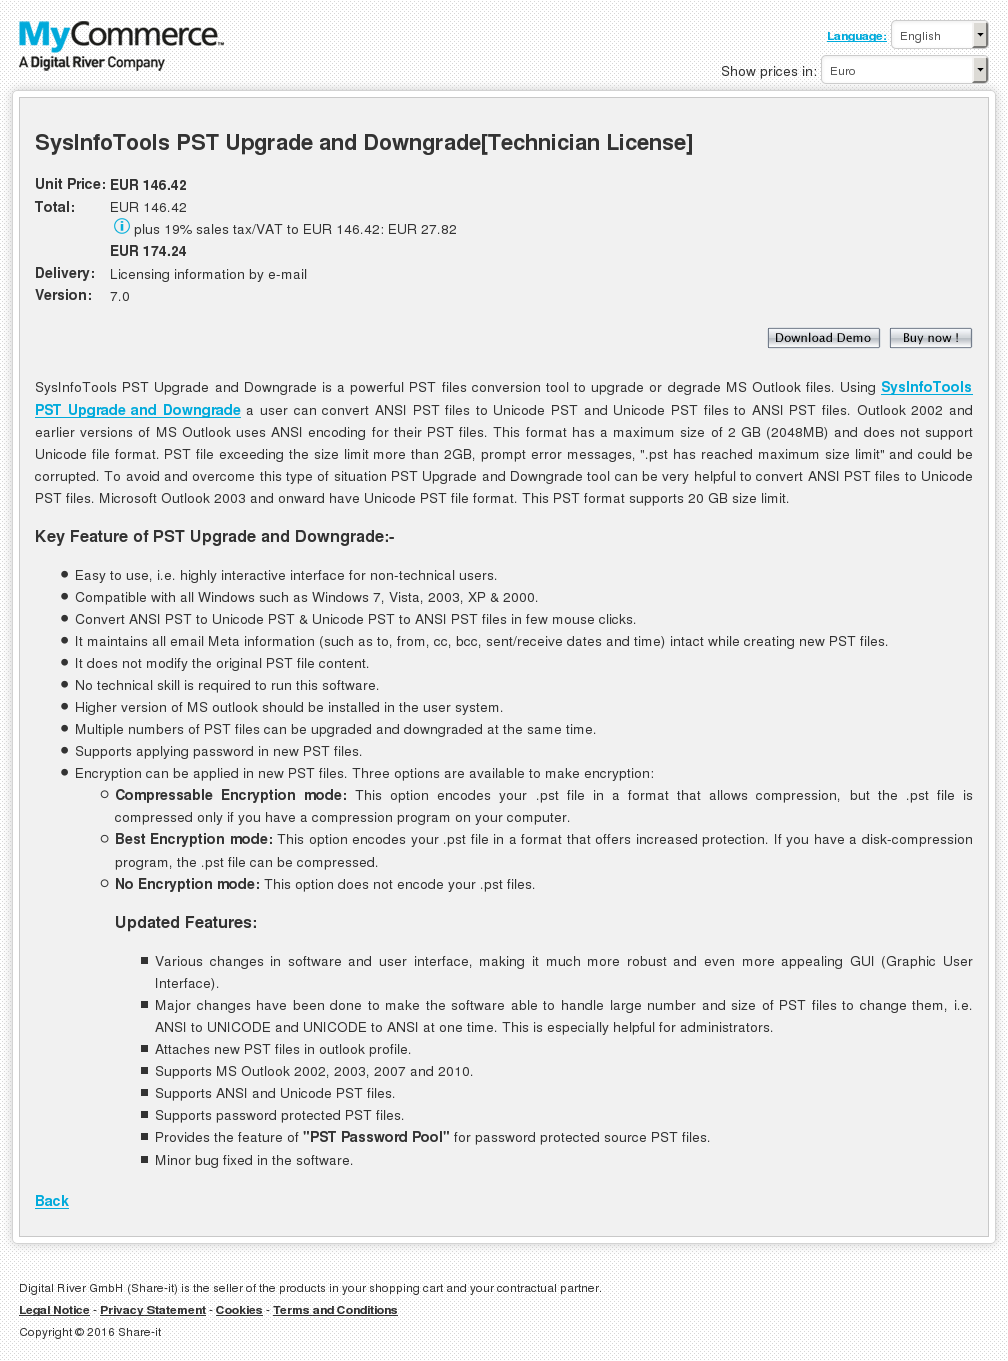 Sysinfotools Pst Upgrade Downgrade Technician License Review